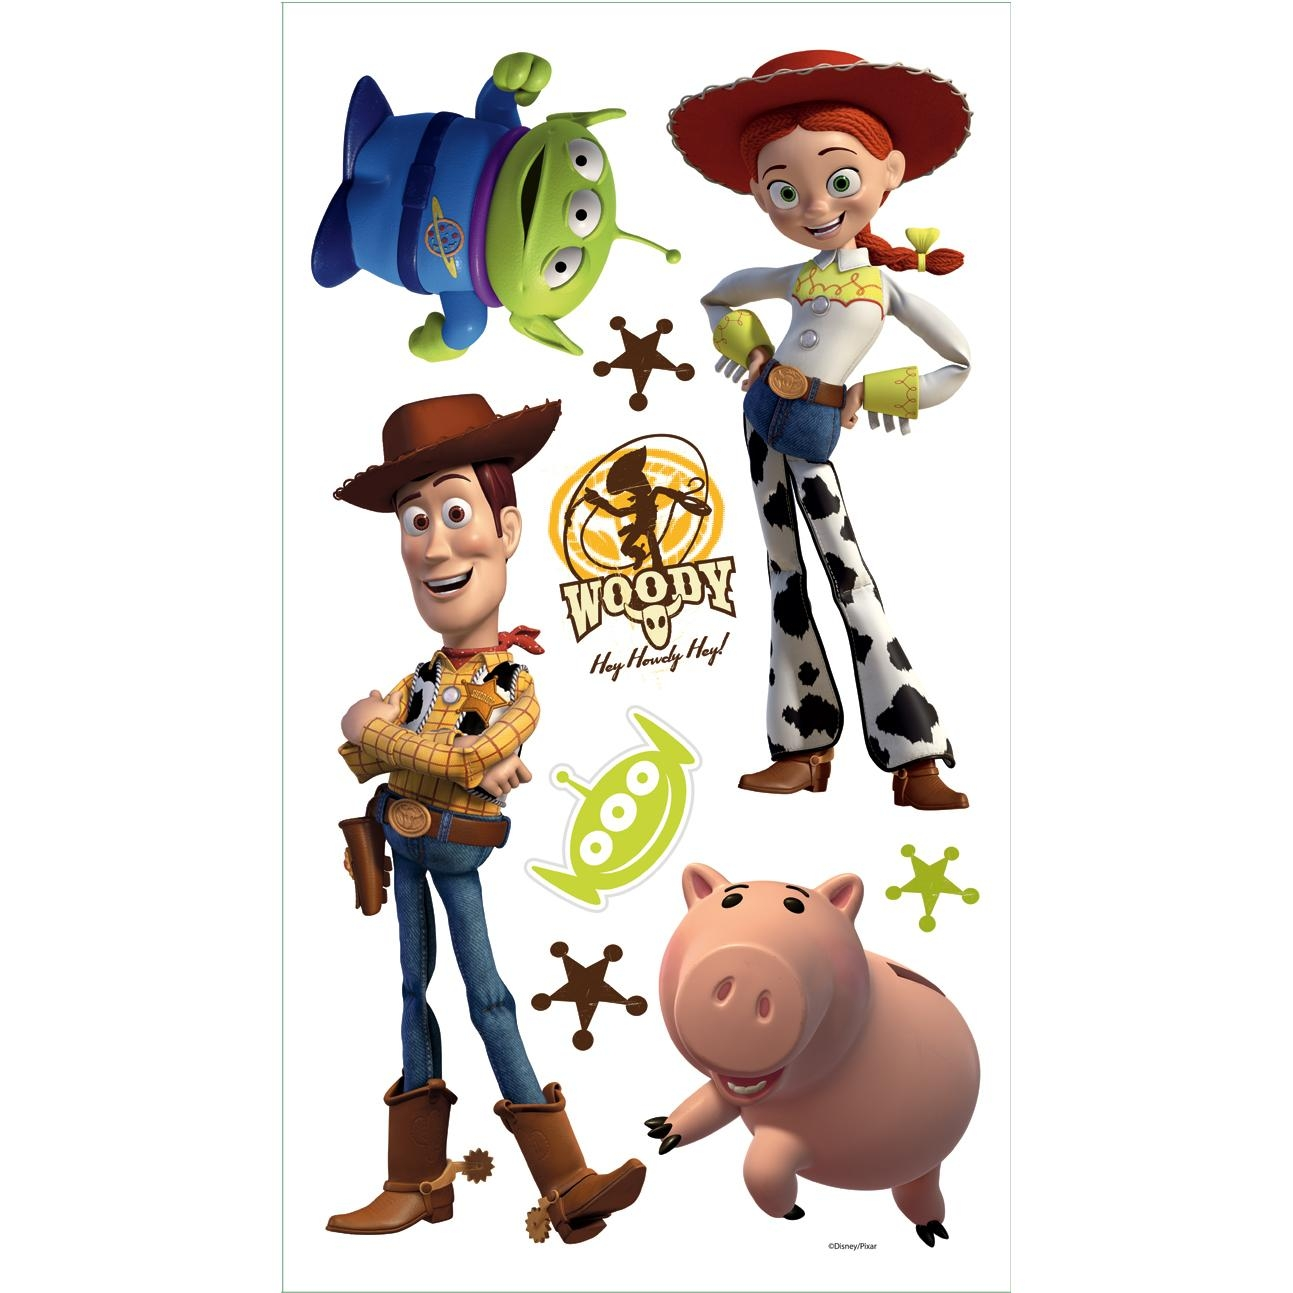 Toy Story 3 Removable Decals   Potty Training Concepts In Toy Story Wall Stickers (Image 16 of 20)